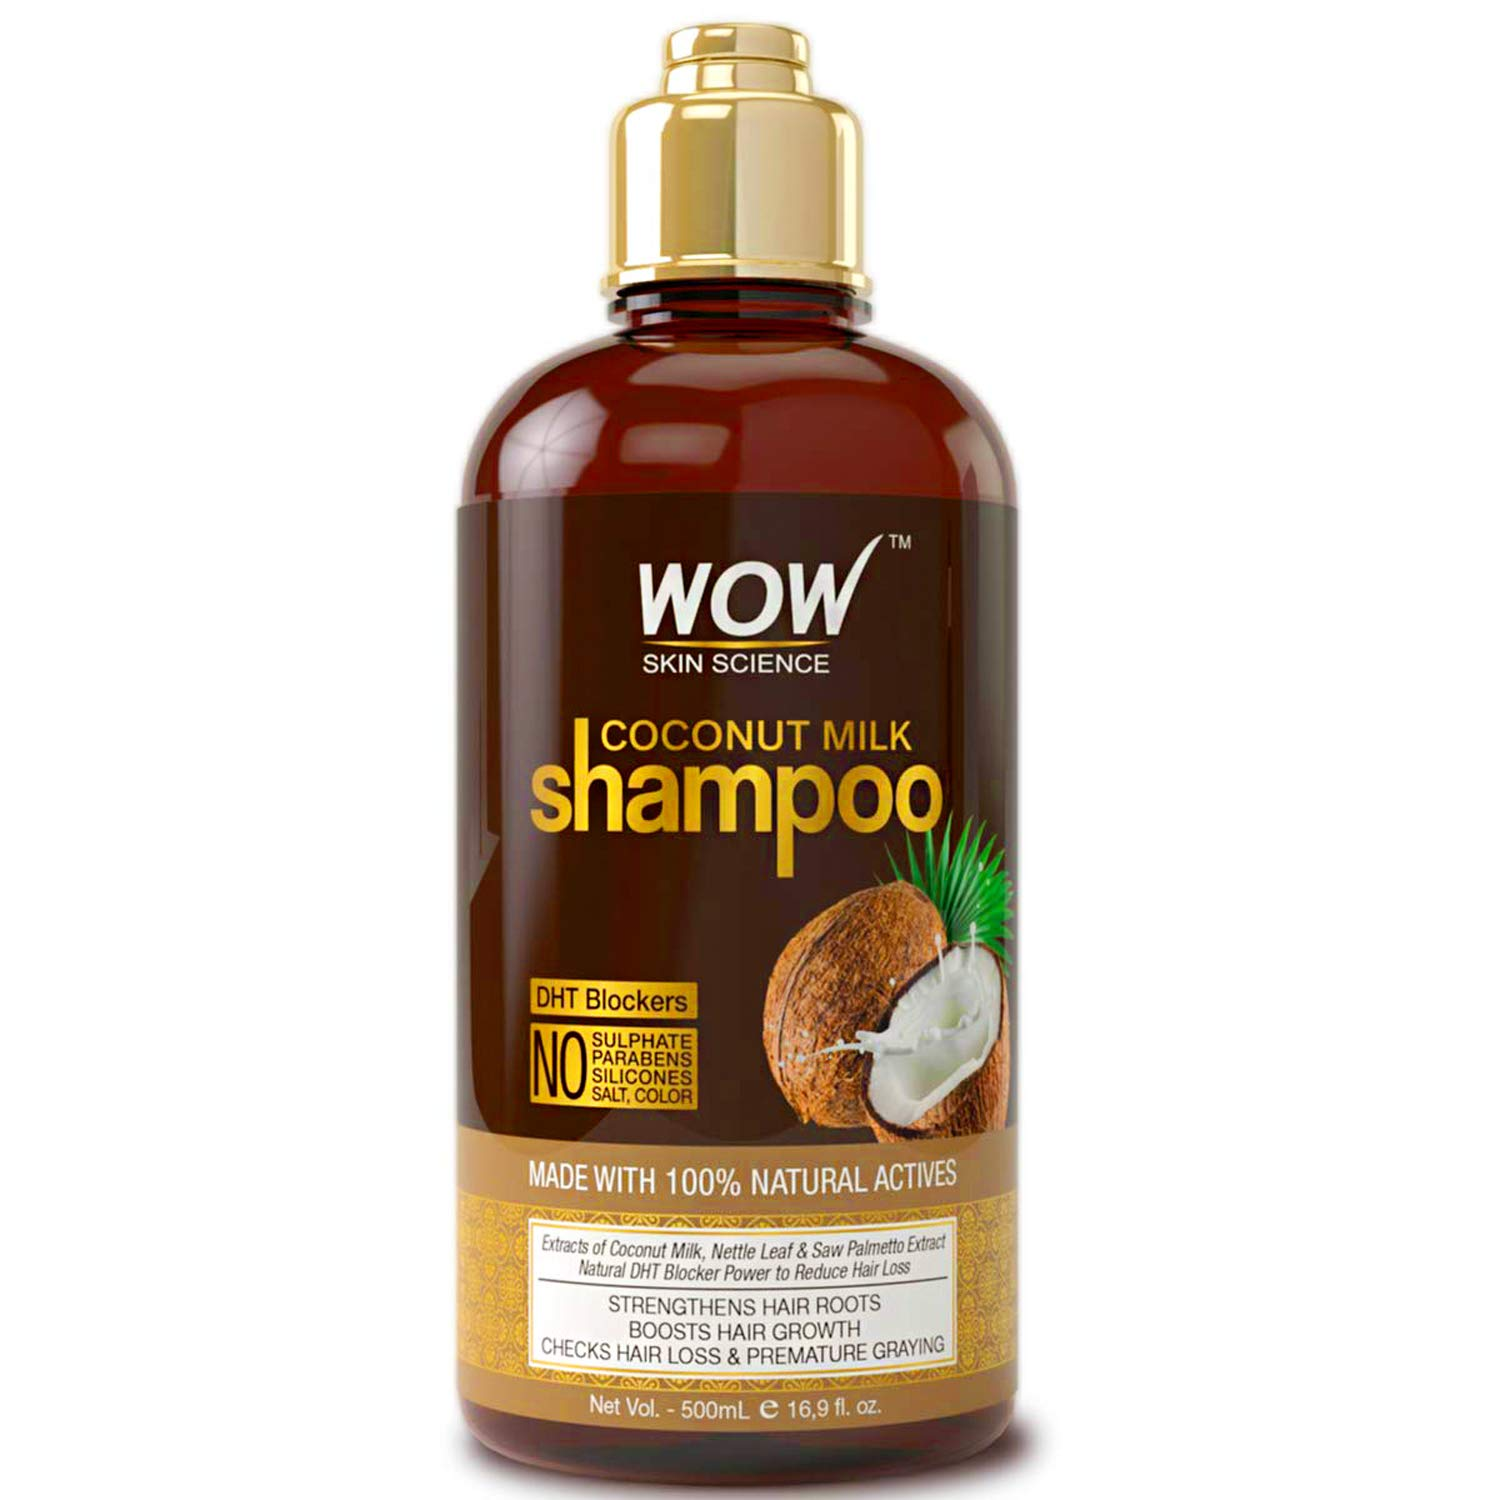 WOW Coconut Milk Shampoo - DHT Blockers Slow Down Hair Loss, Grey Hair, Stimulate Growth For Thick, Glossy Hair - Paraben, Sulfate, Salt, Silicone Free - All Hair Types, Adults & Children - 500 mL by BUYWOW